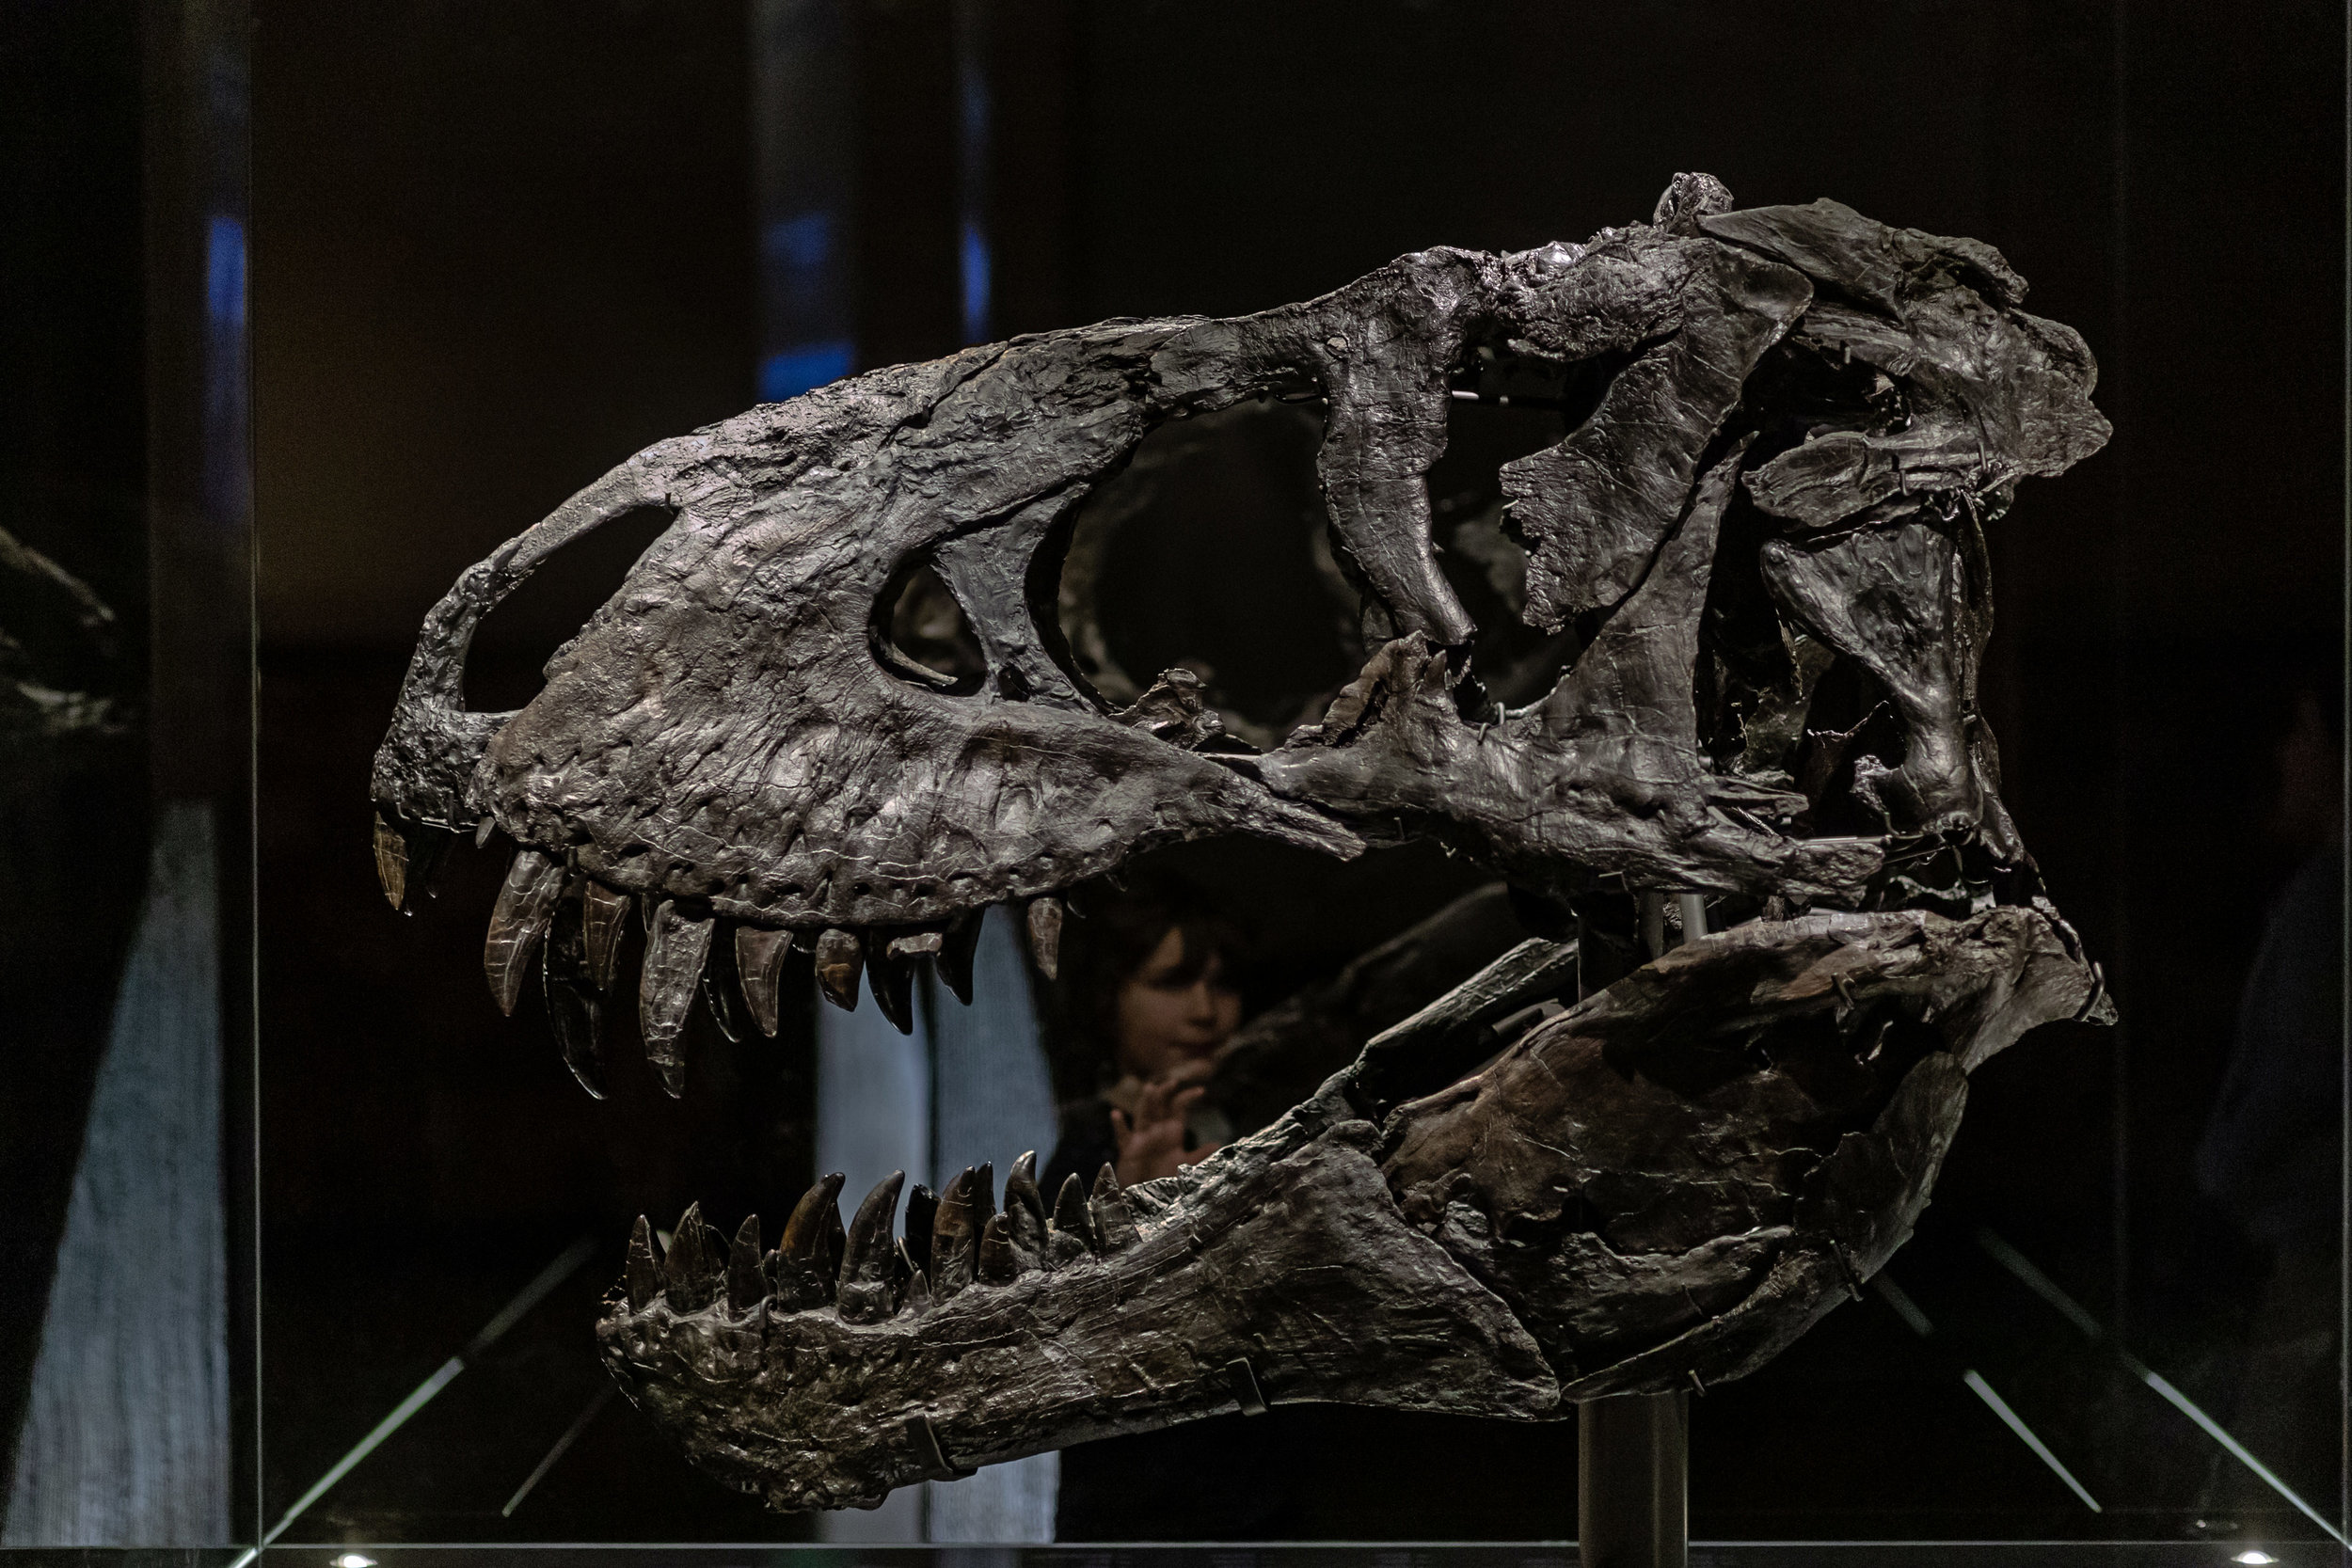 A young boy watches at the skull of Tristan, a 67 million year old fossil of a Tyrannosaurus Rex, during the Tristan - Berlin Bares Teeth exhibition.